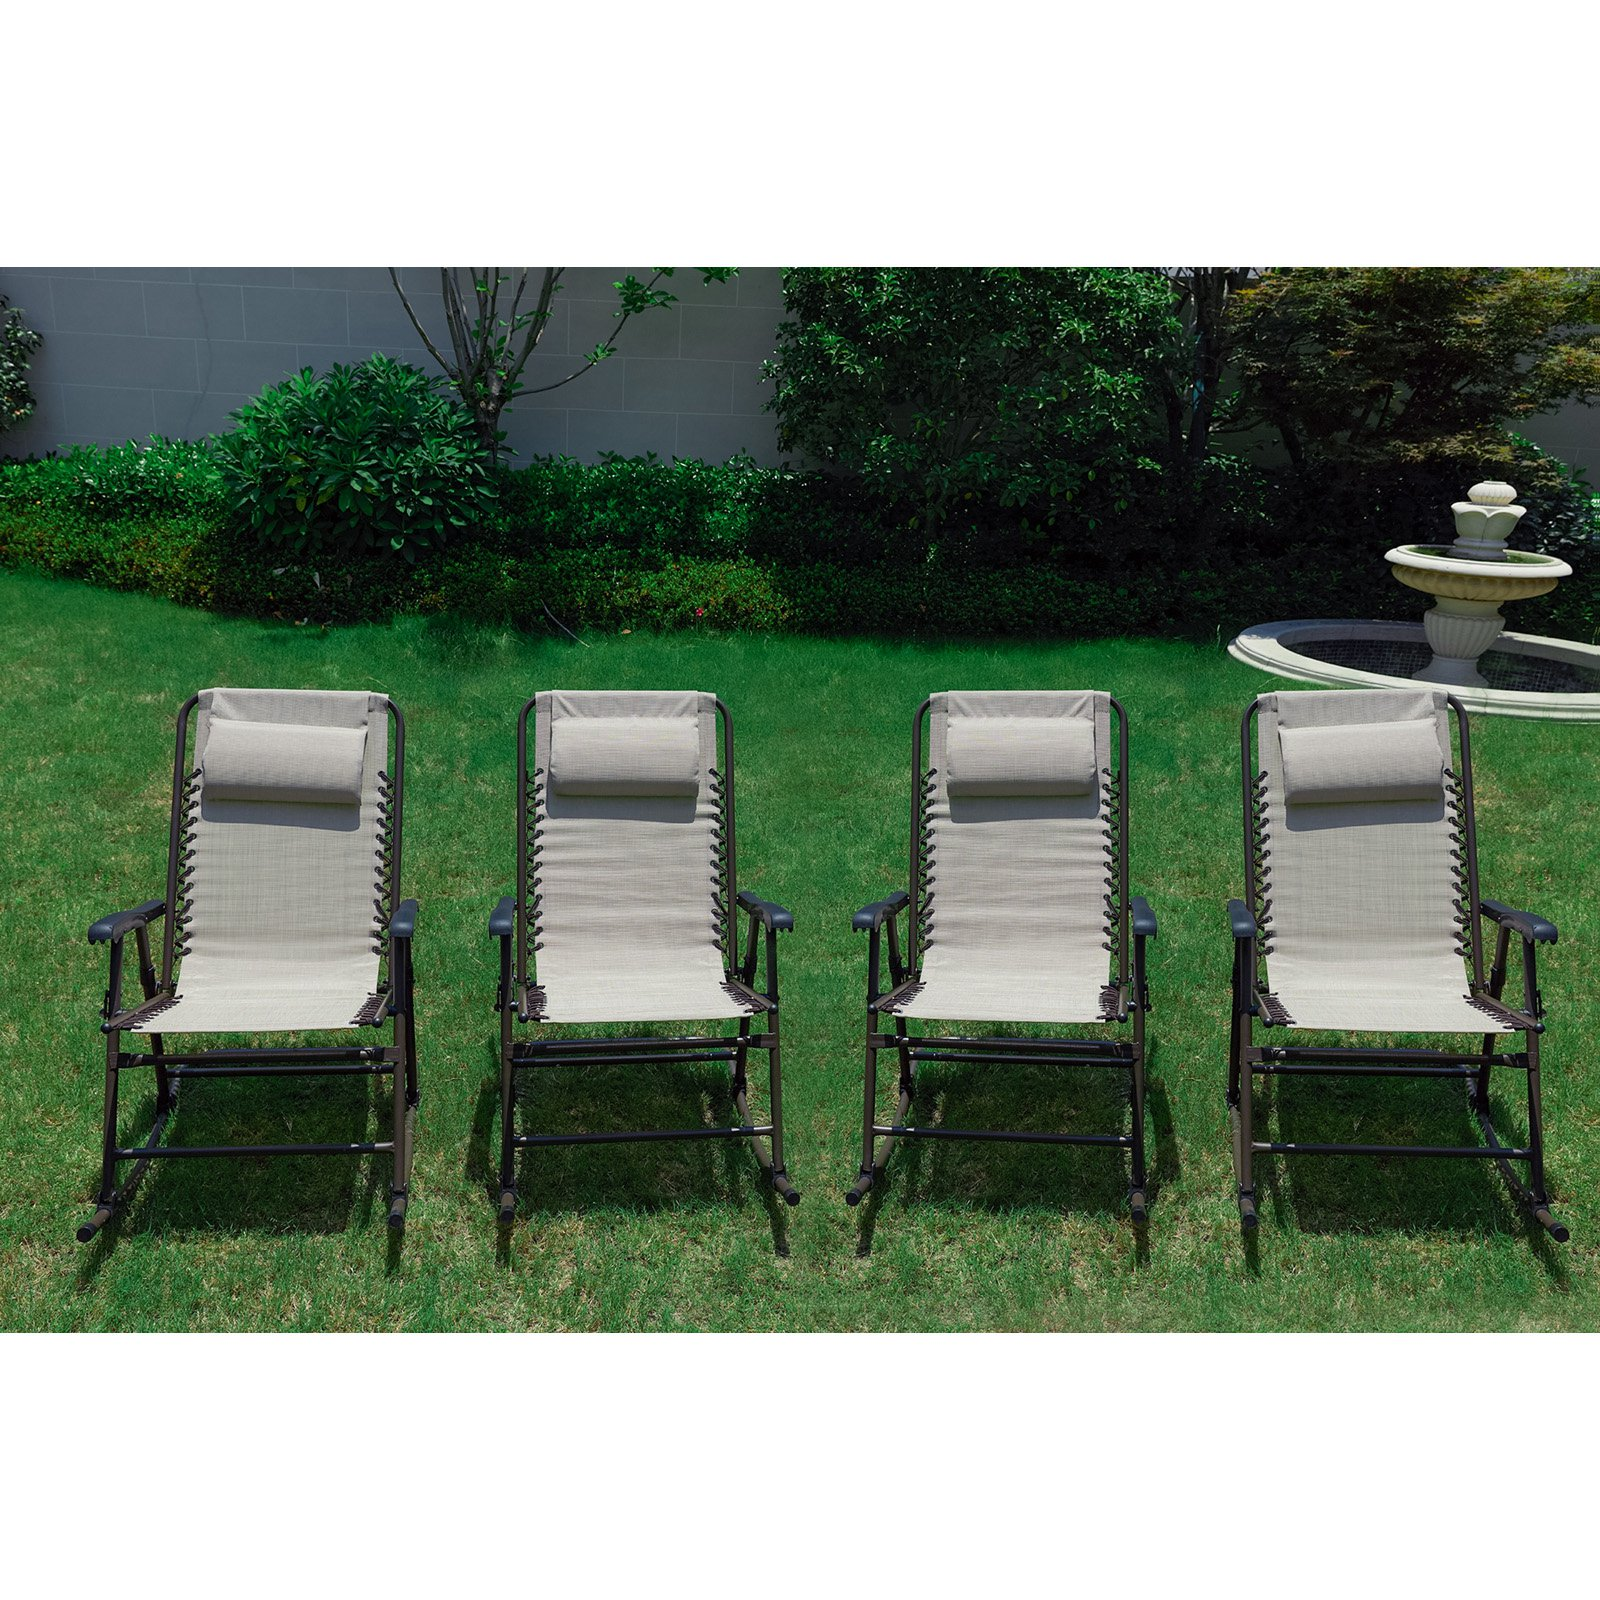 Outdoor Rocking Chair Set Every Season Folding Steel Outdoor Rocking Chair Set Of 4